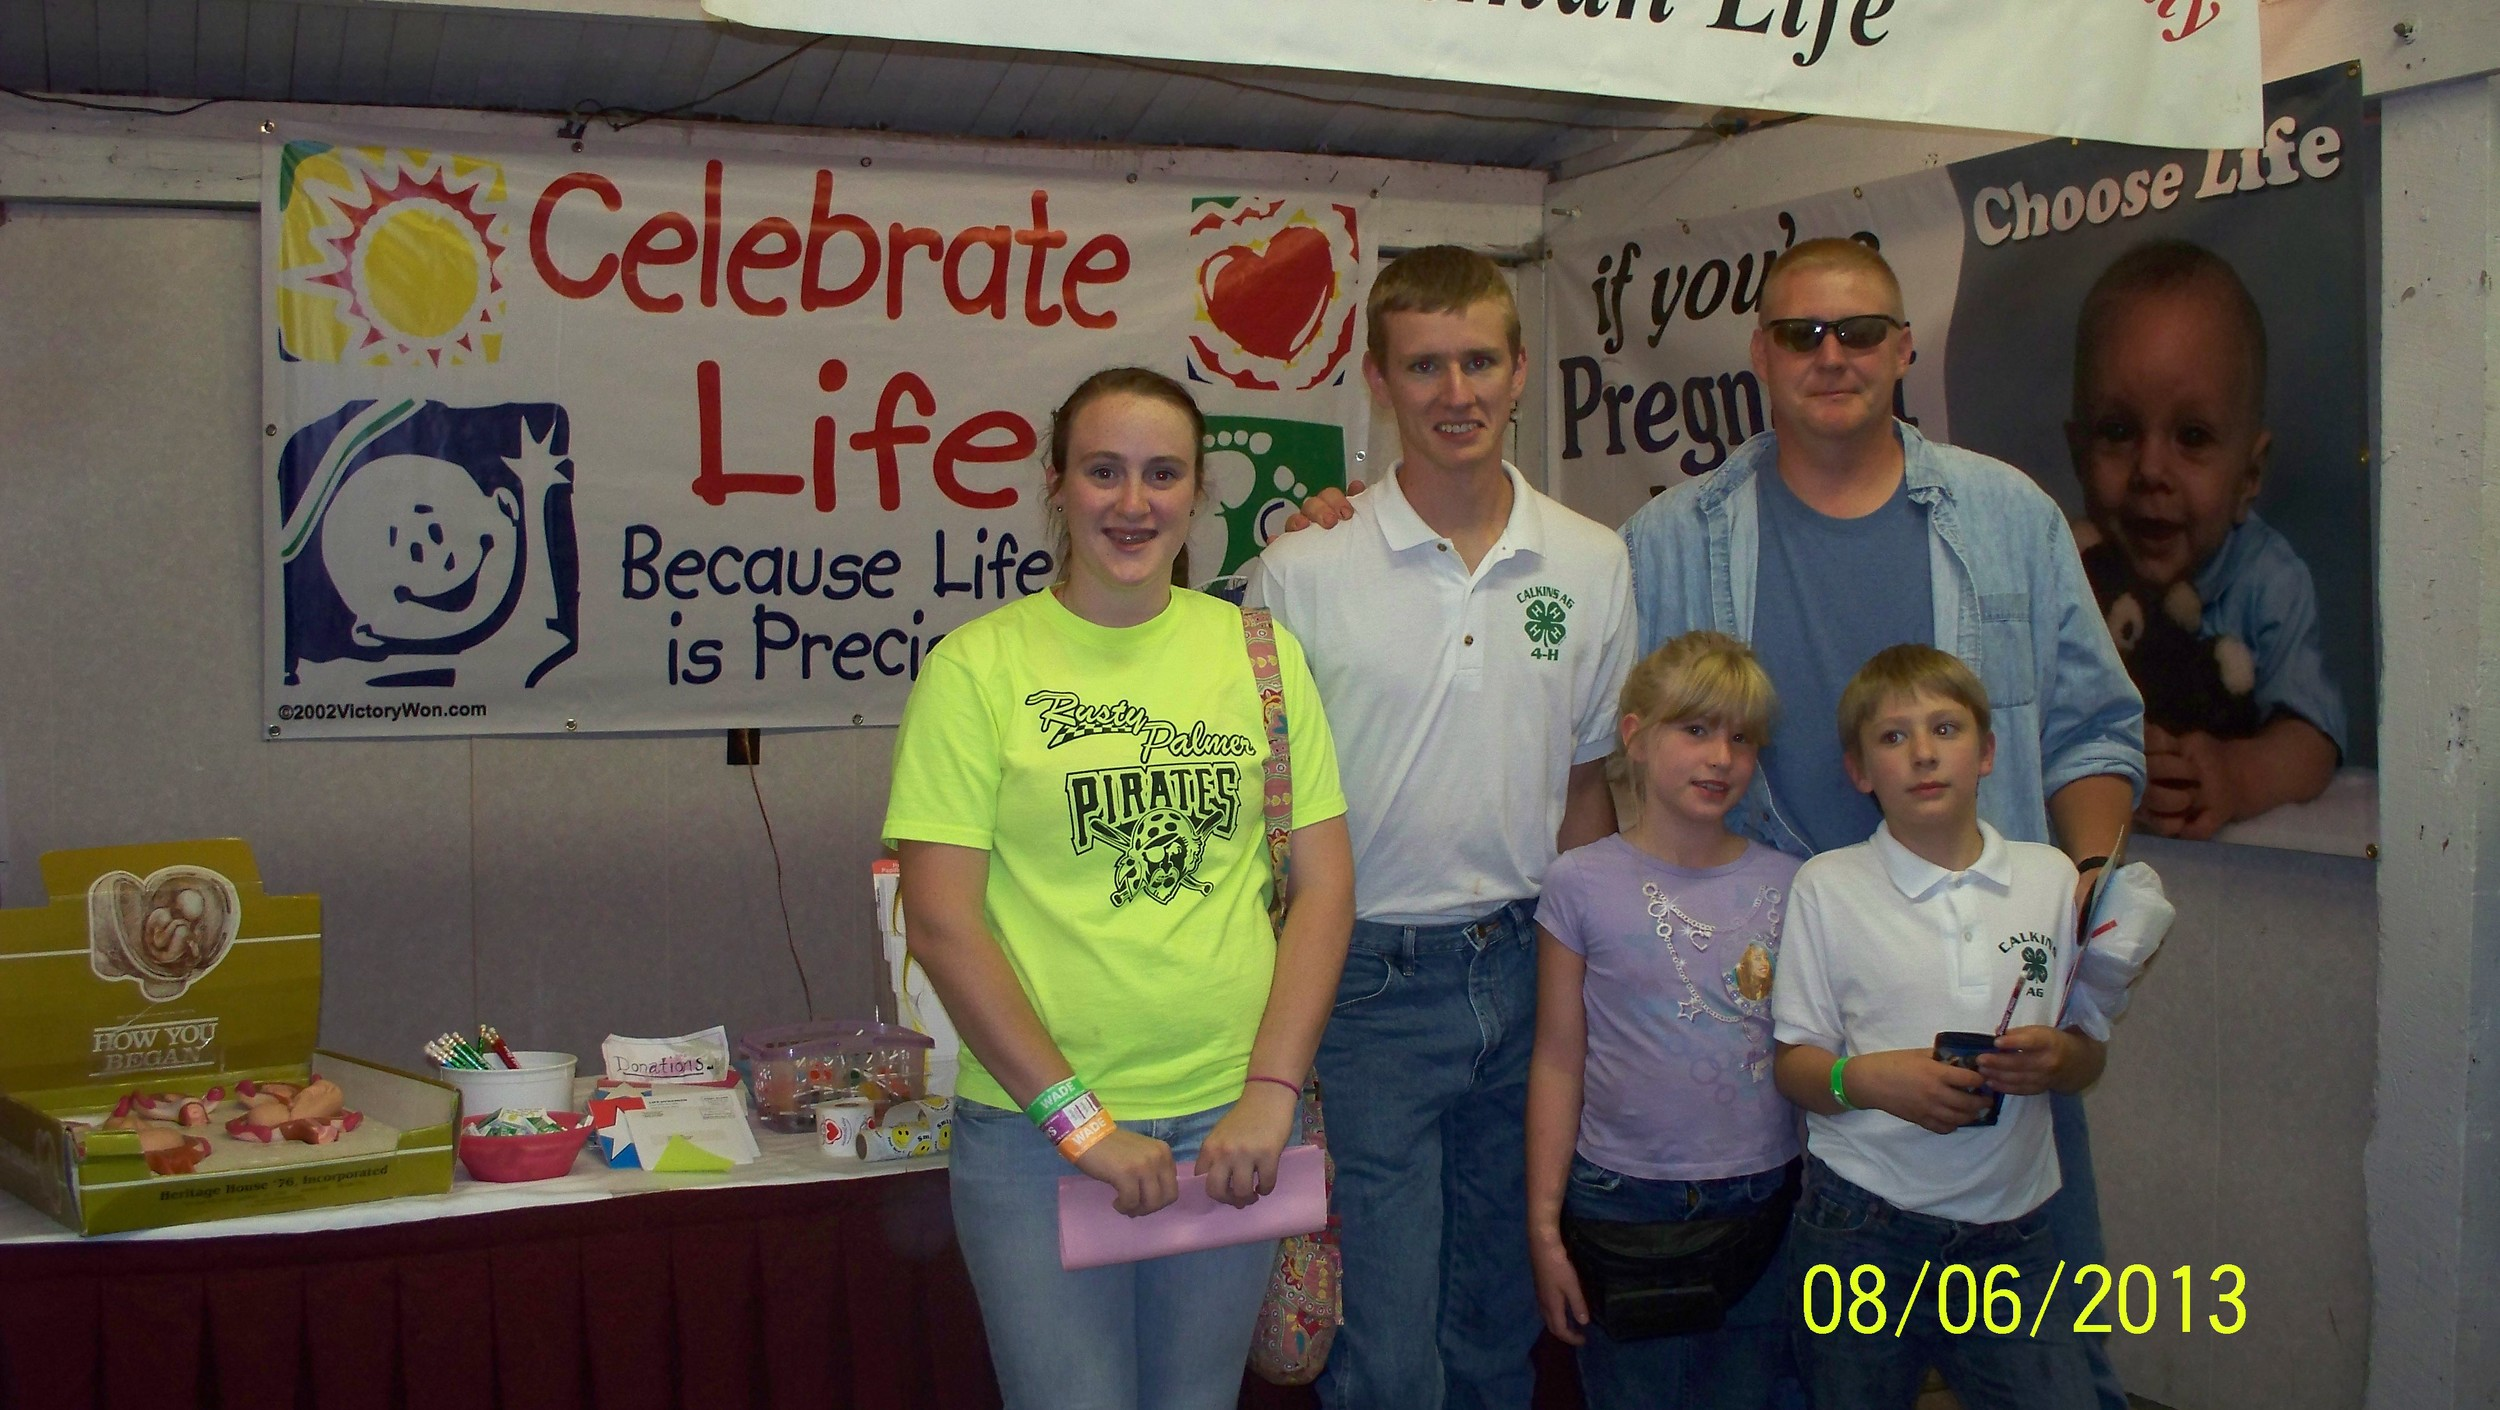 Wayne Co. Fair Pro Life booth-2013 002.JPG